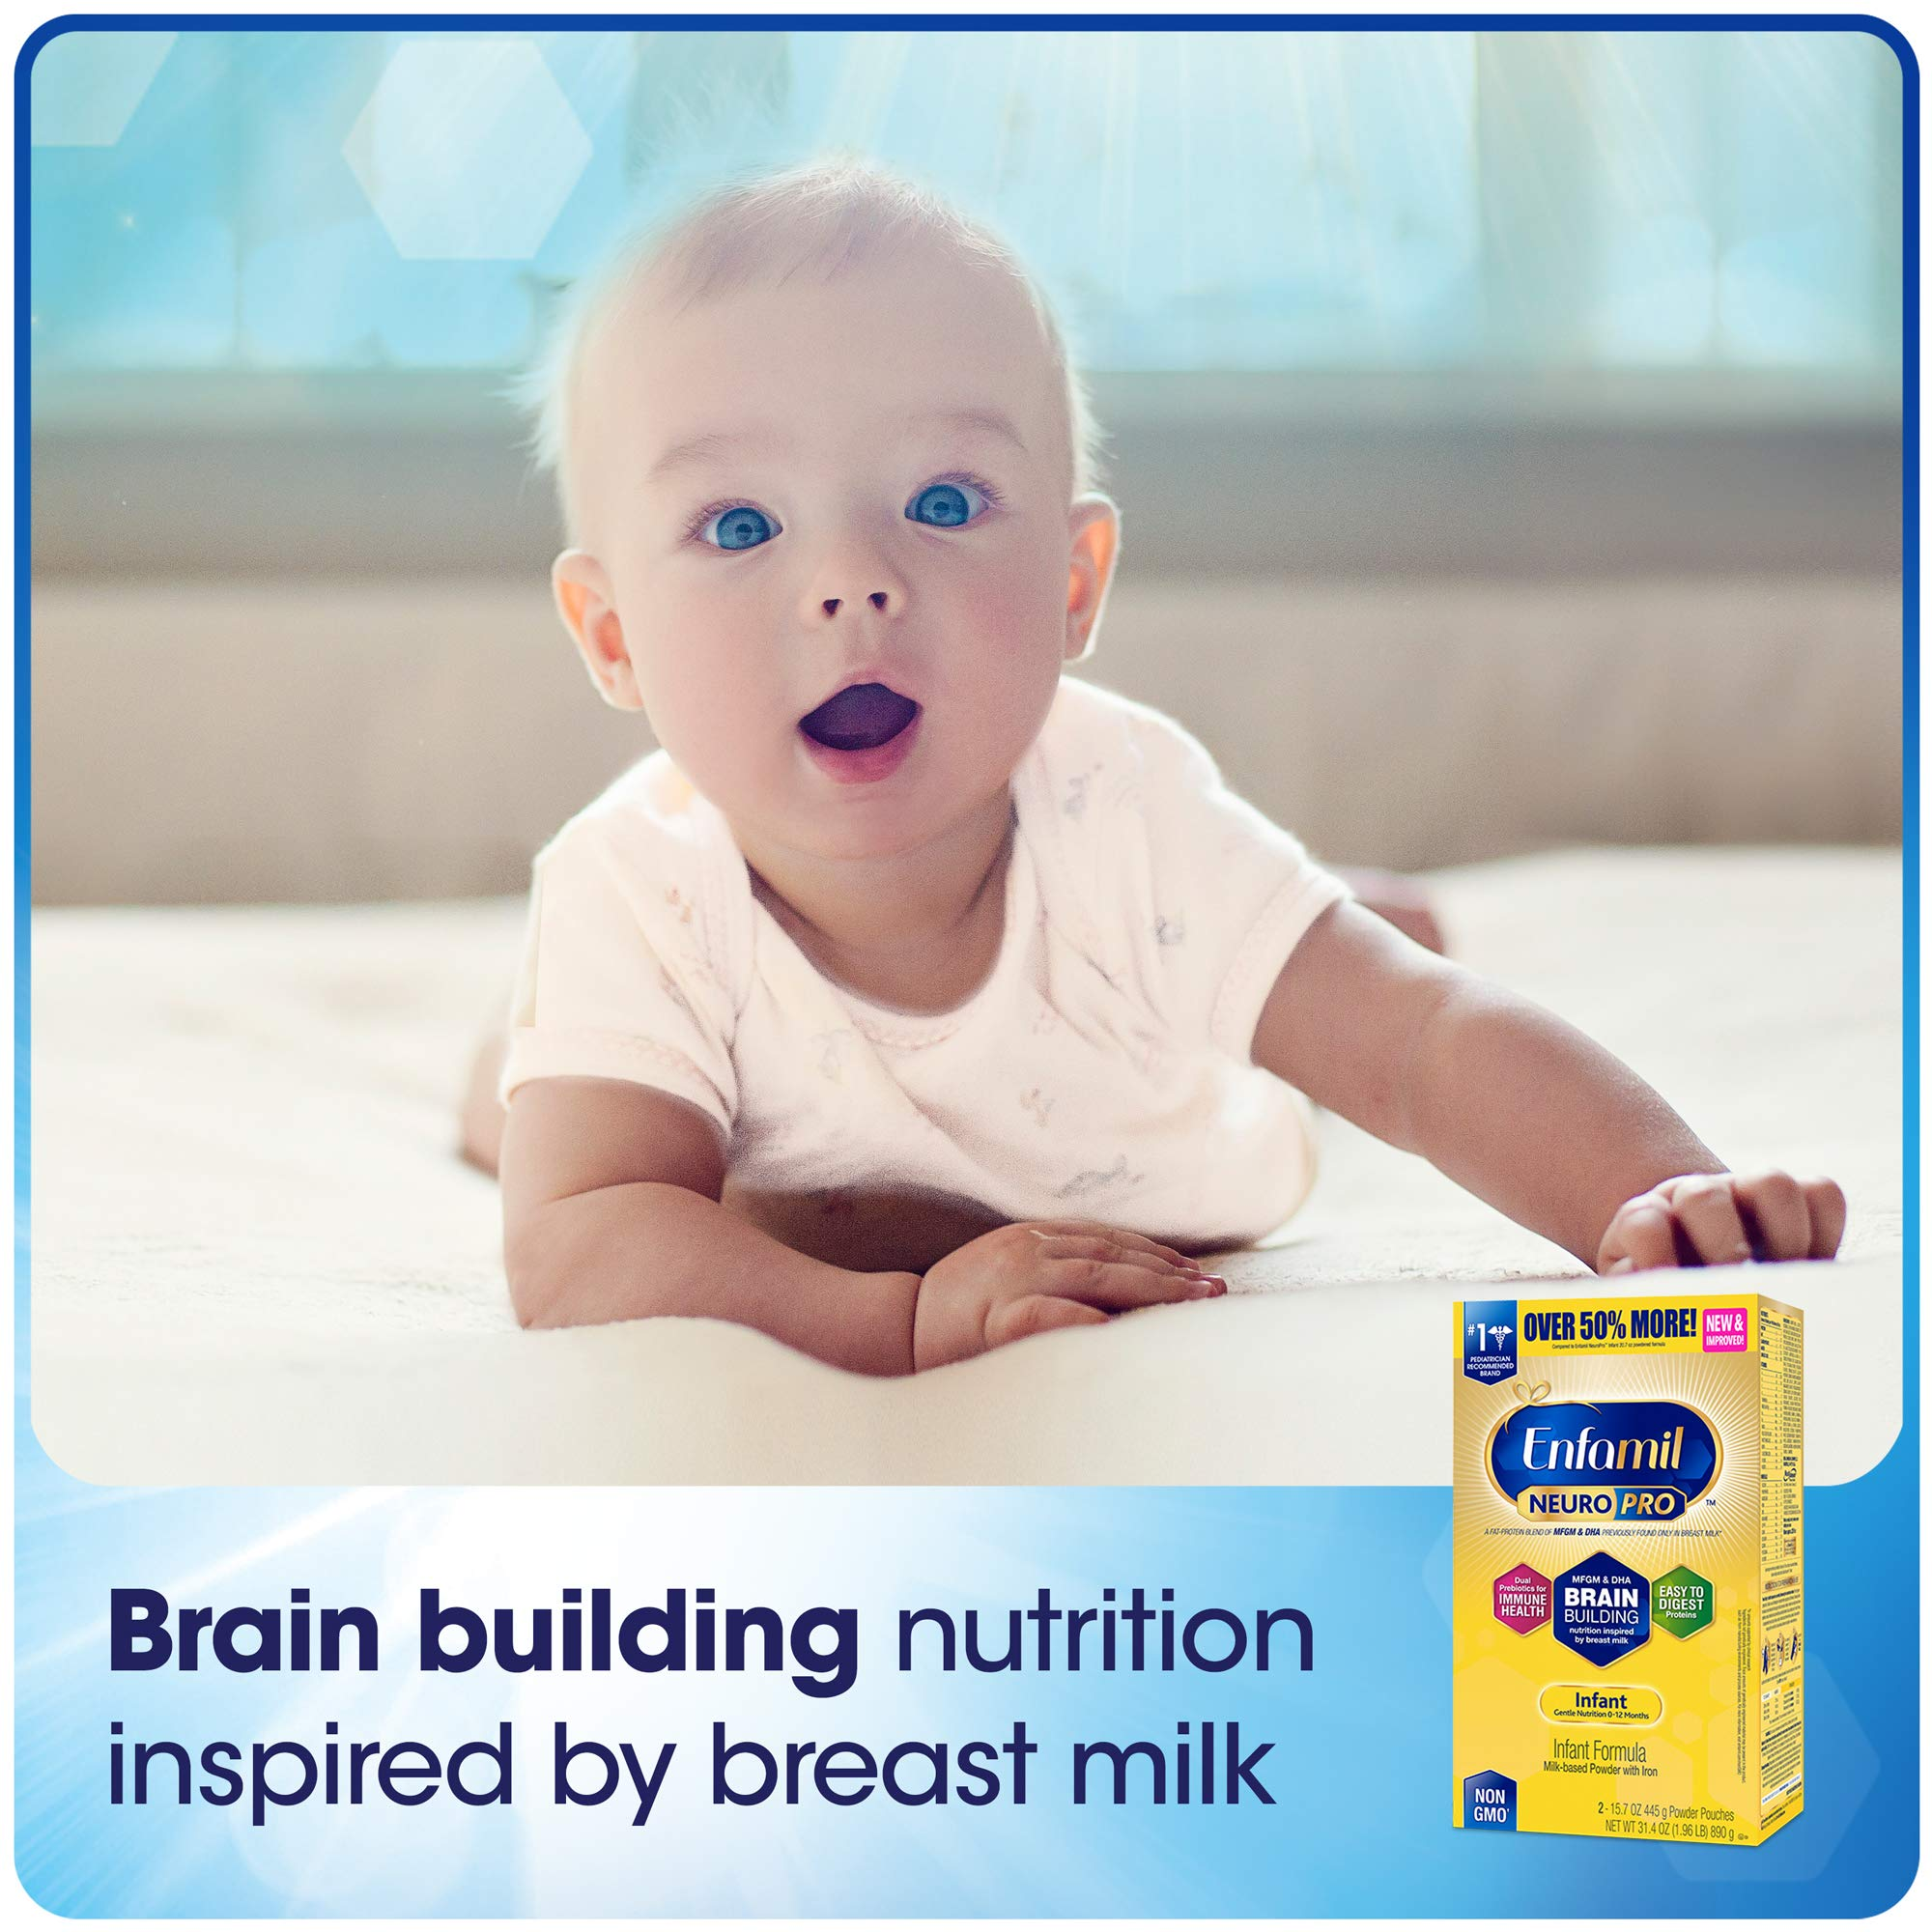 Enfamil NeuroPro Infant Formula - Brain Building Nutrition Inspired by Breast Milk - Powder Refill Box, 31.4 oz (Pack of 4) by Enfamil (Image #6)